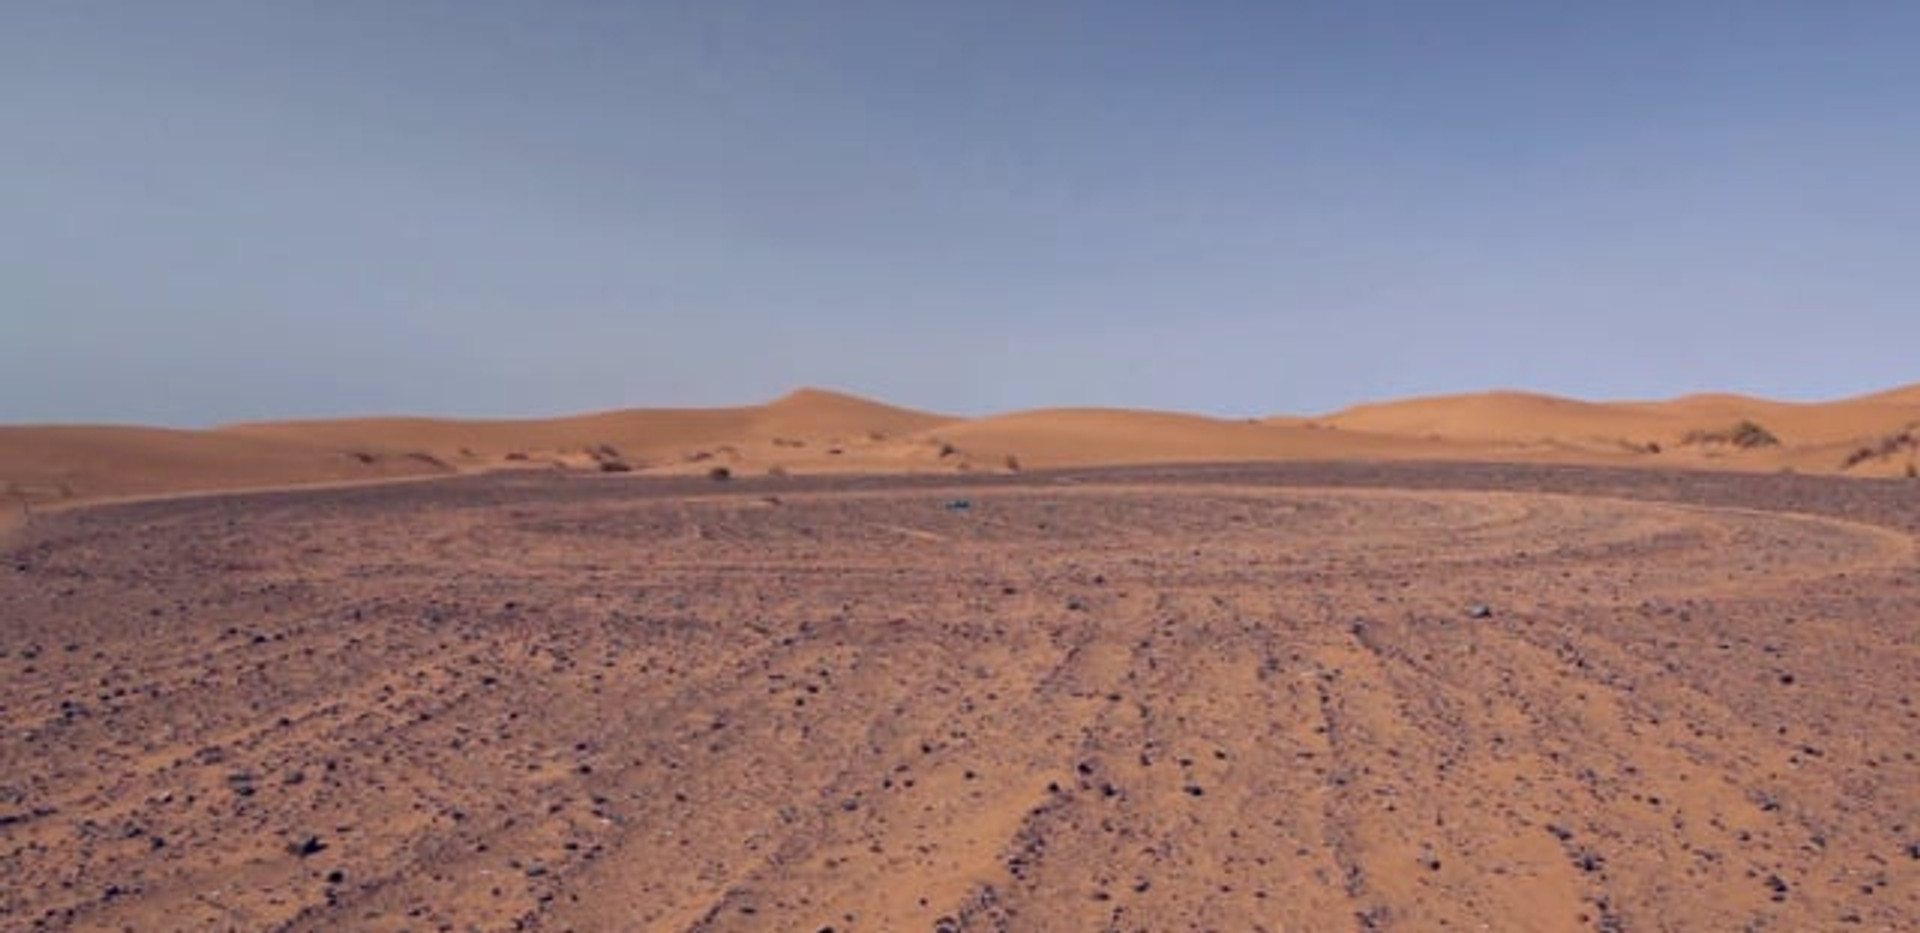 Drawing Landscape - Sahara 2014 - Video of performance HD Video 5:43 - Edition of 5 + 2EA